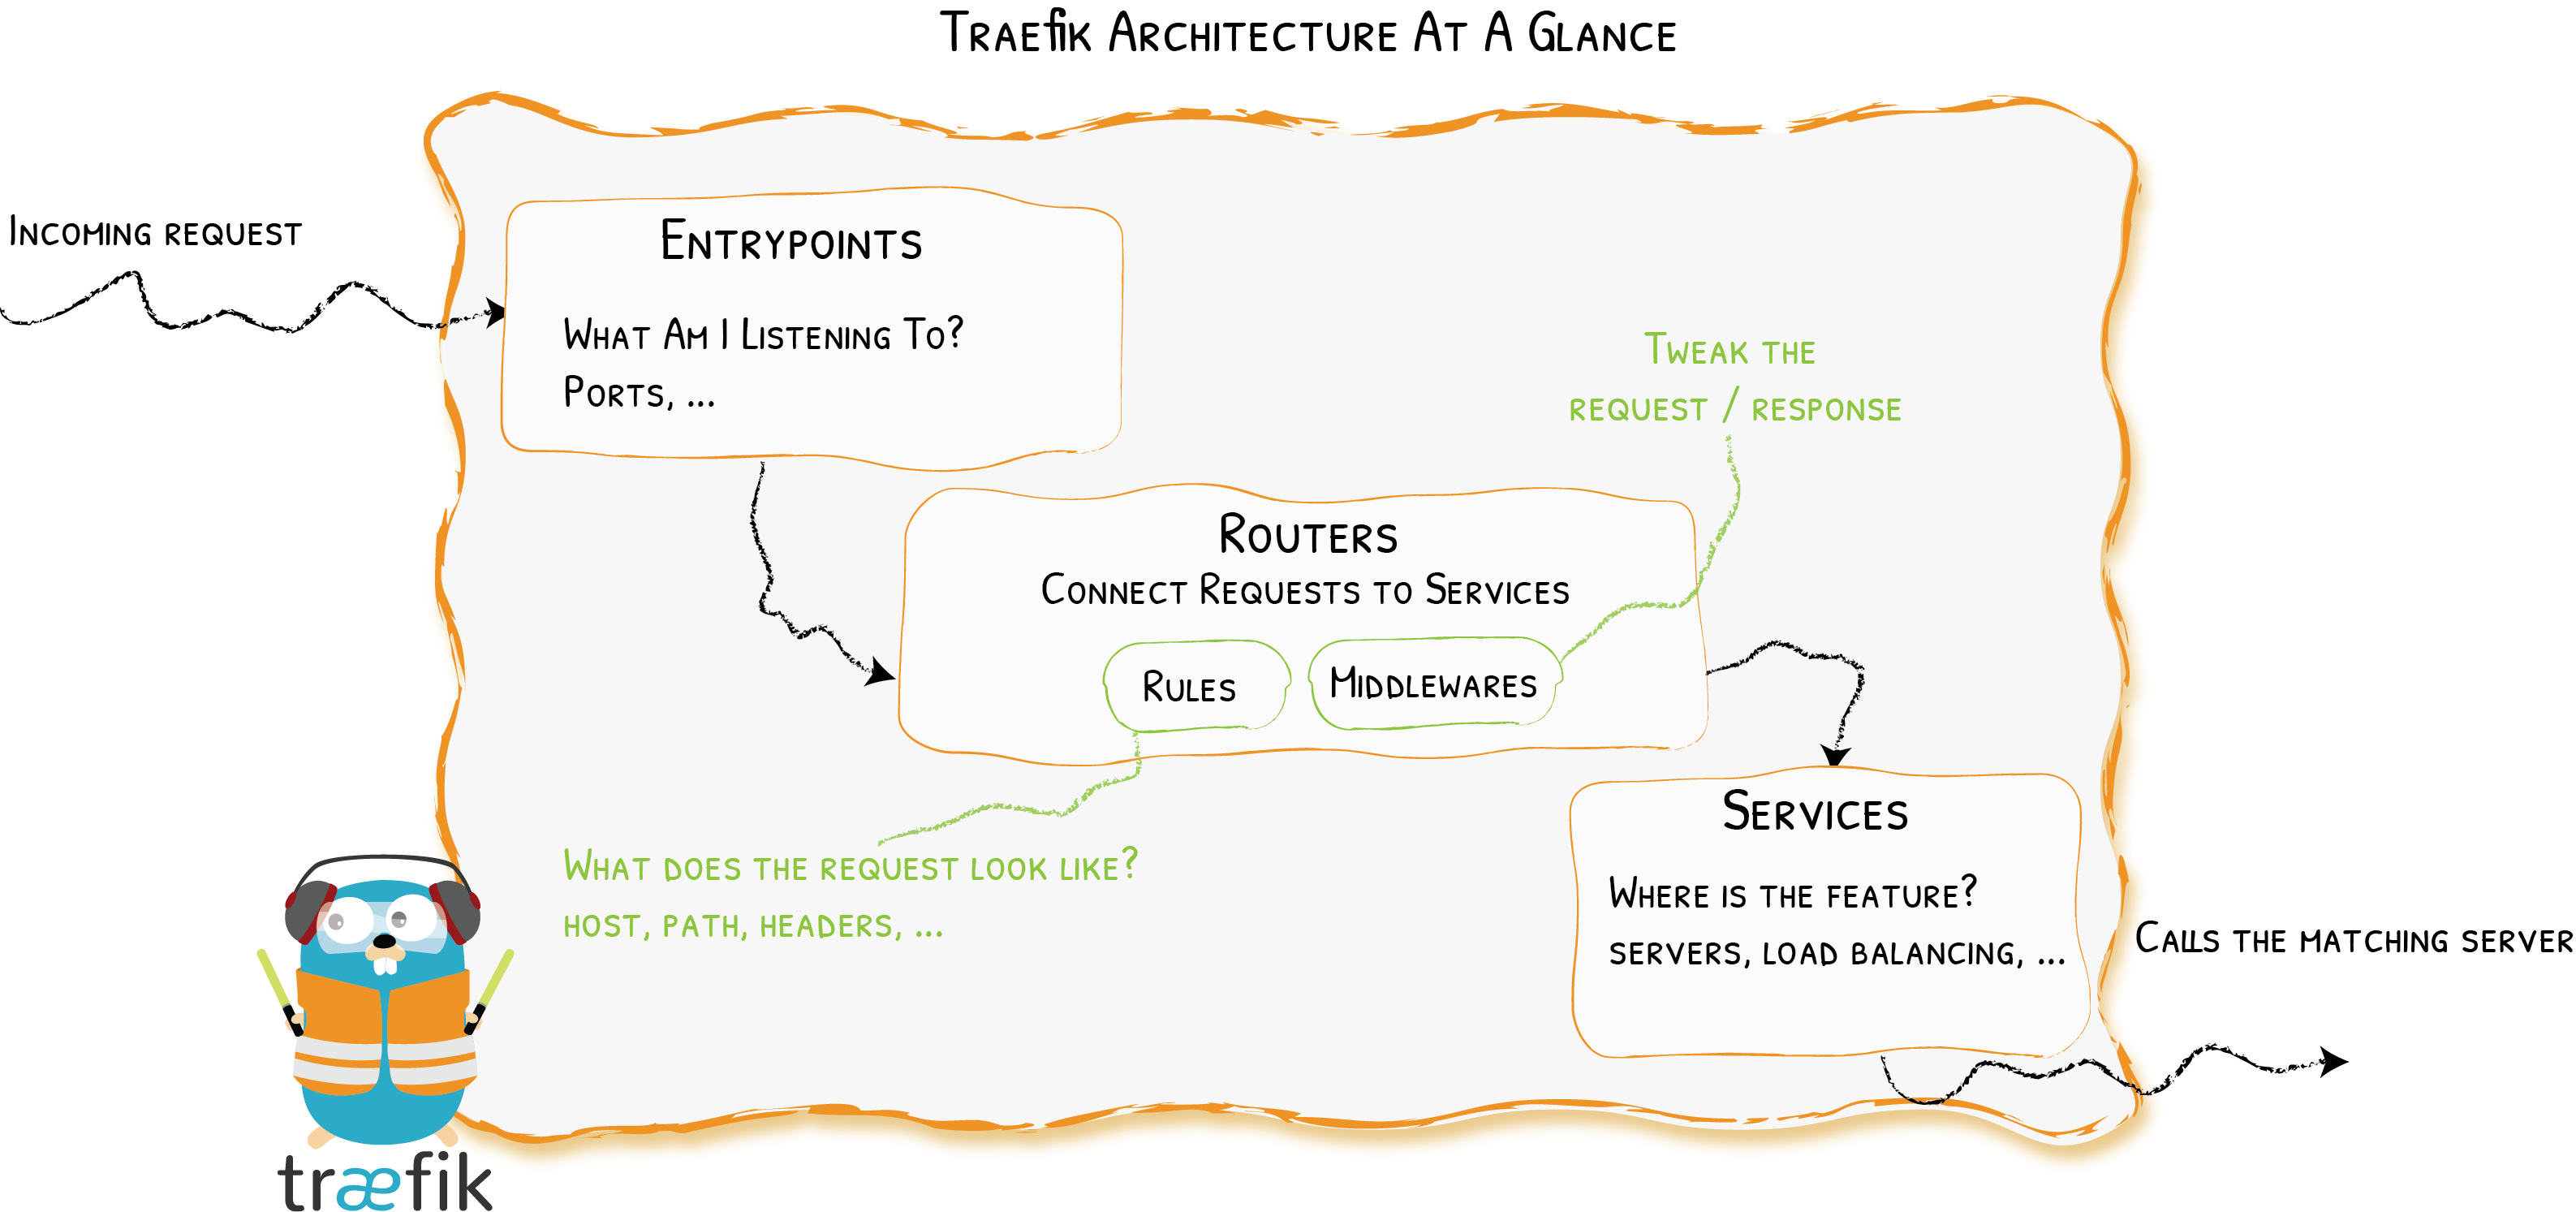 traefik architecture overview